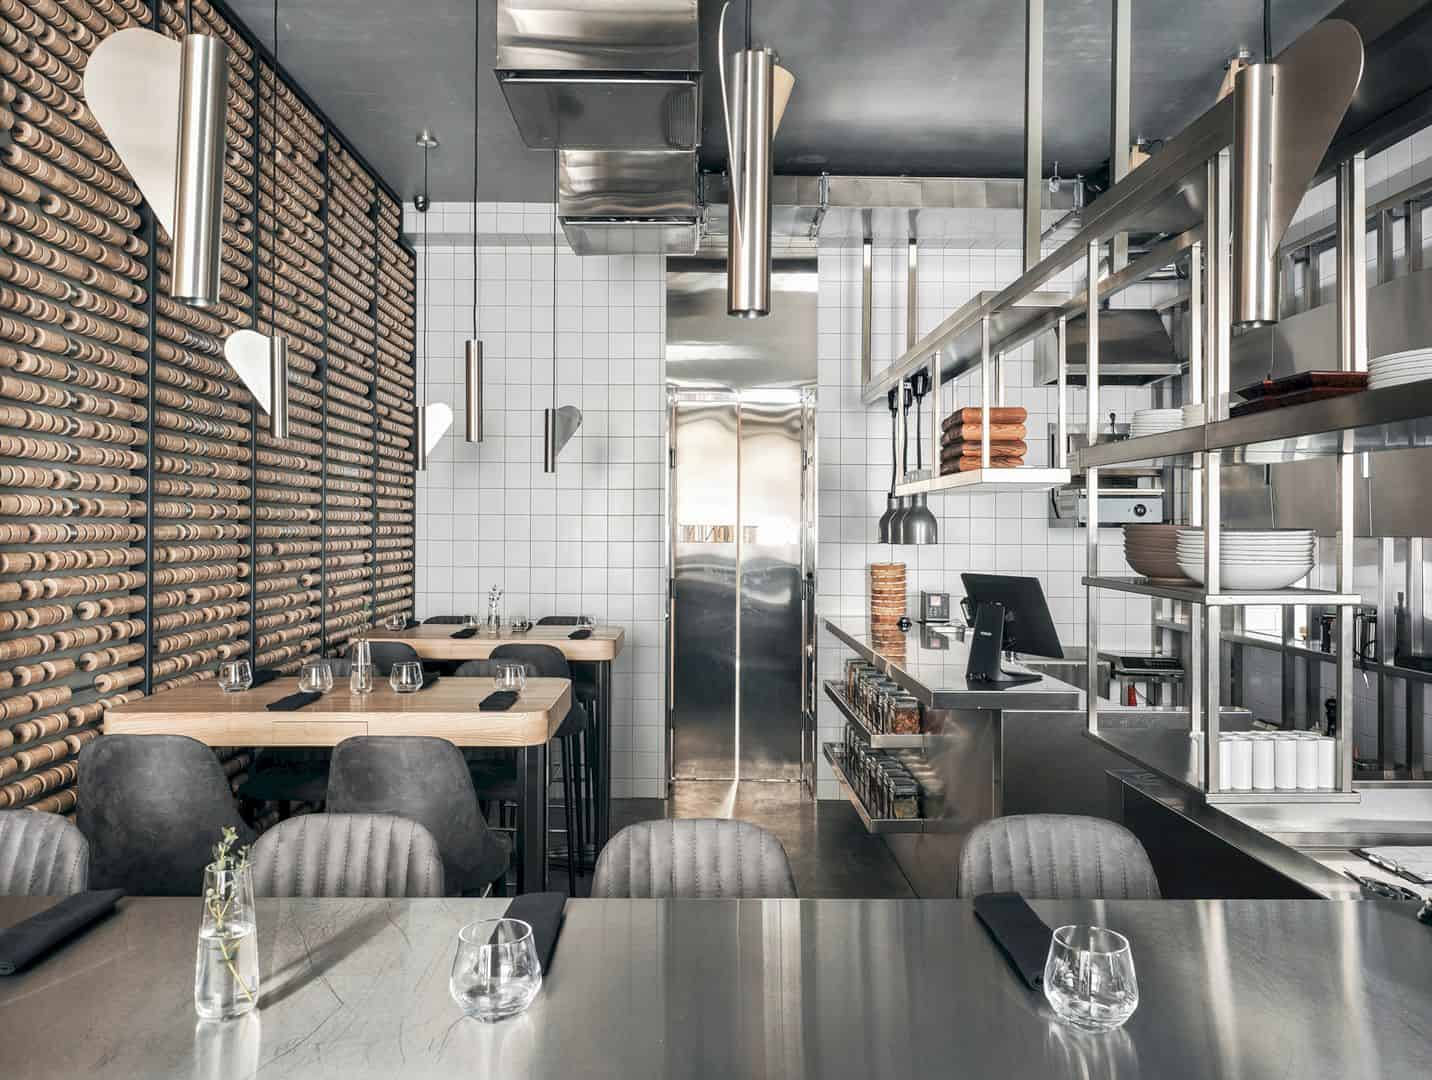 Interiors Cuisine Birch Modern Interior Of Author S Cuisine Restaurant With Two